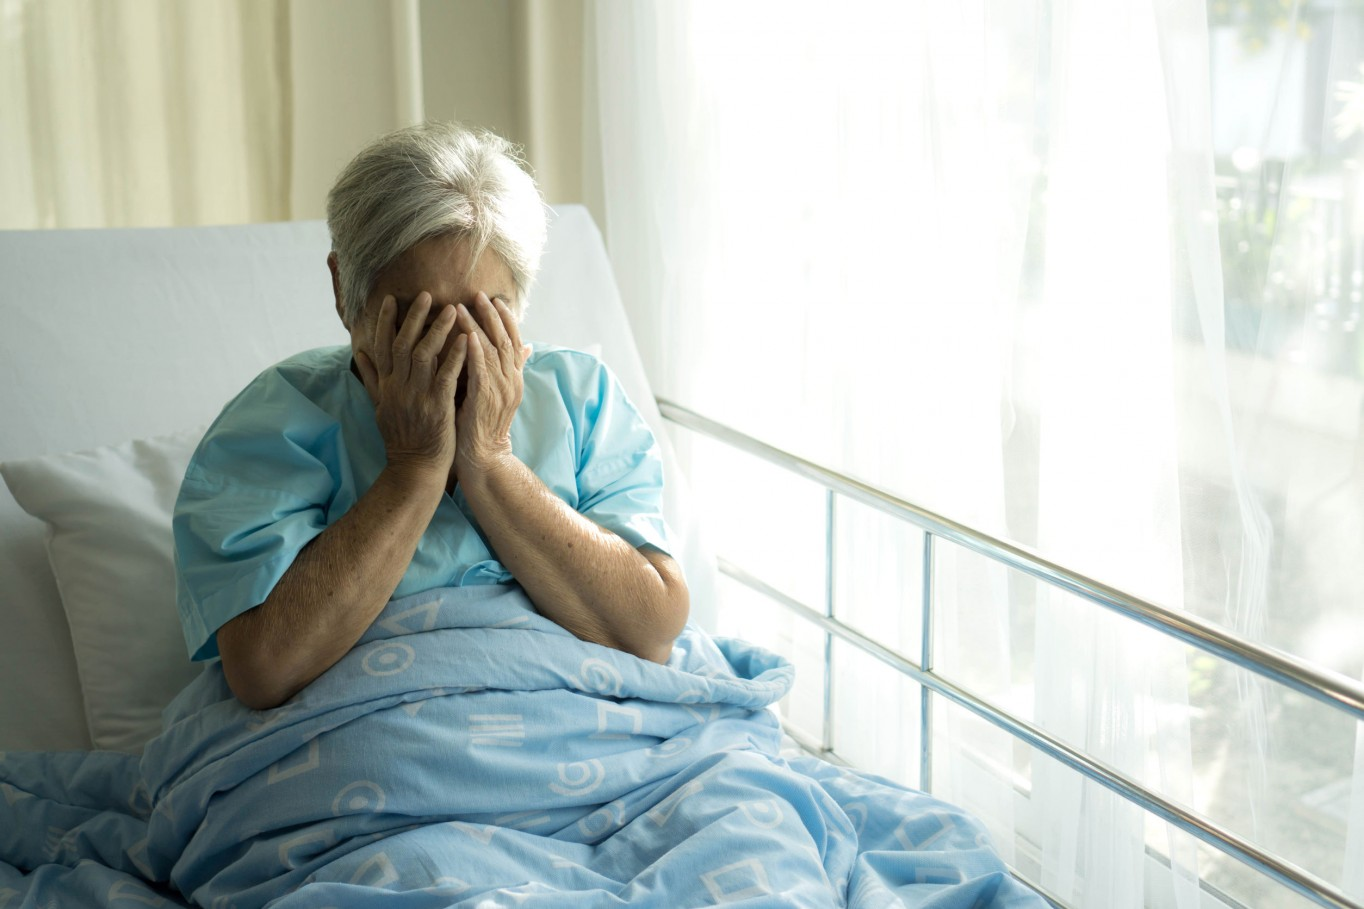 Lonely Elderly patients in hospital bed patients want to go home - medical and healthcare concept